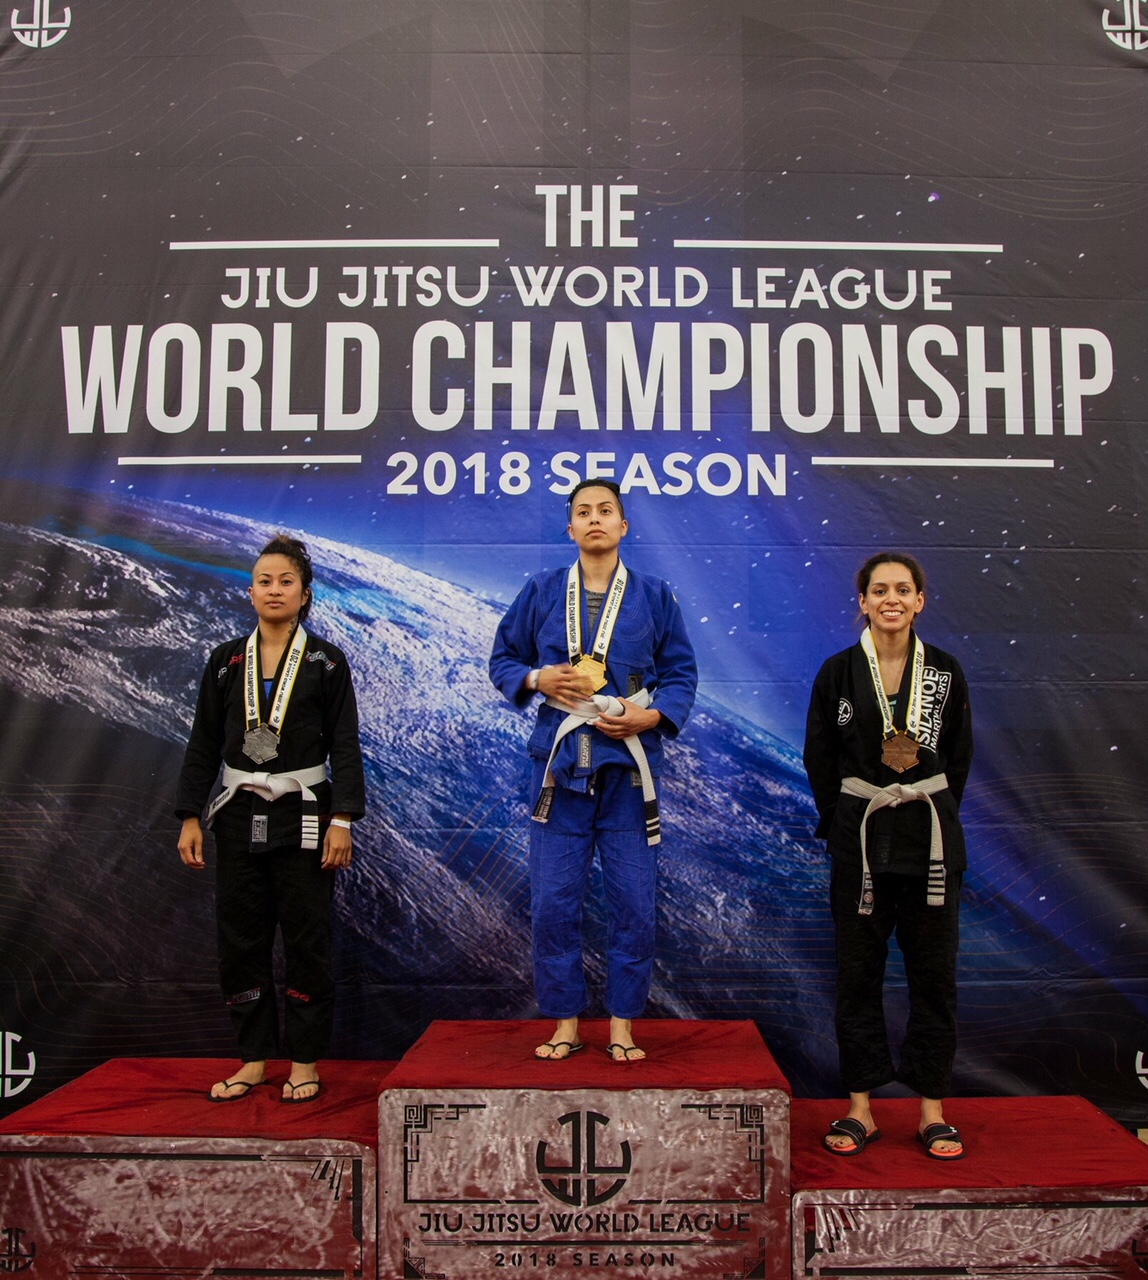 Jessica securing a bronze medal at Jiu Jitsu World Championships in Azusa